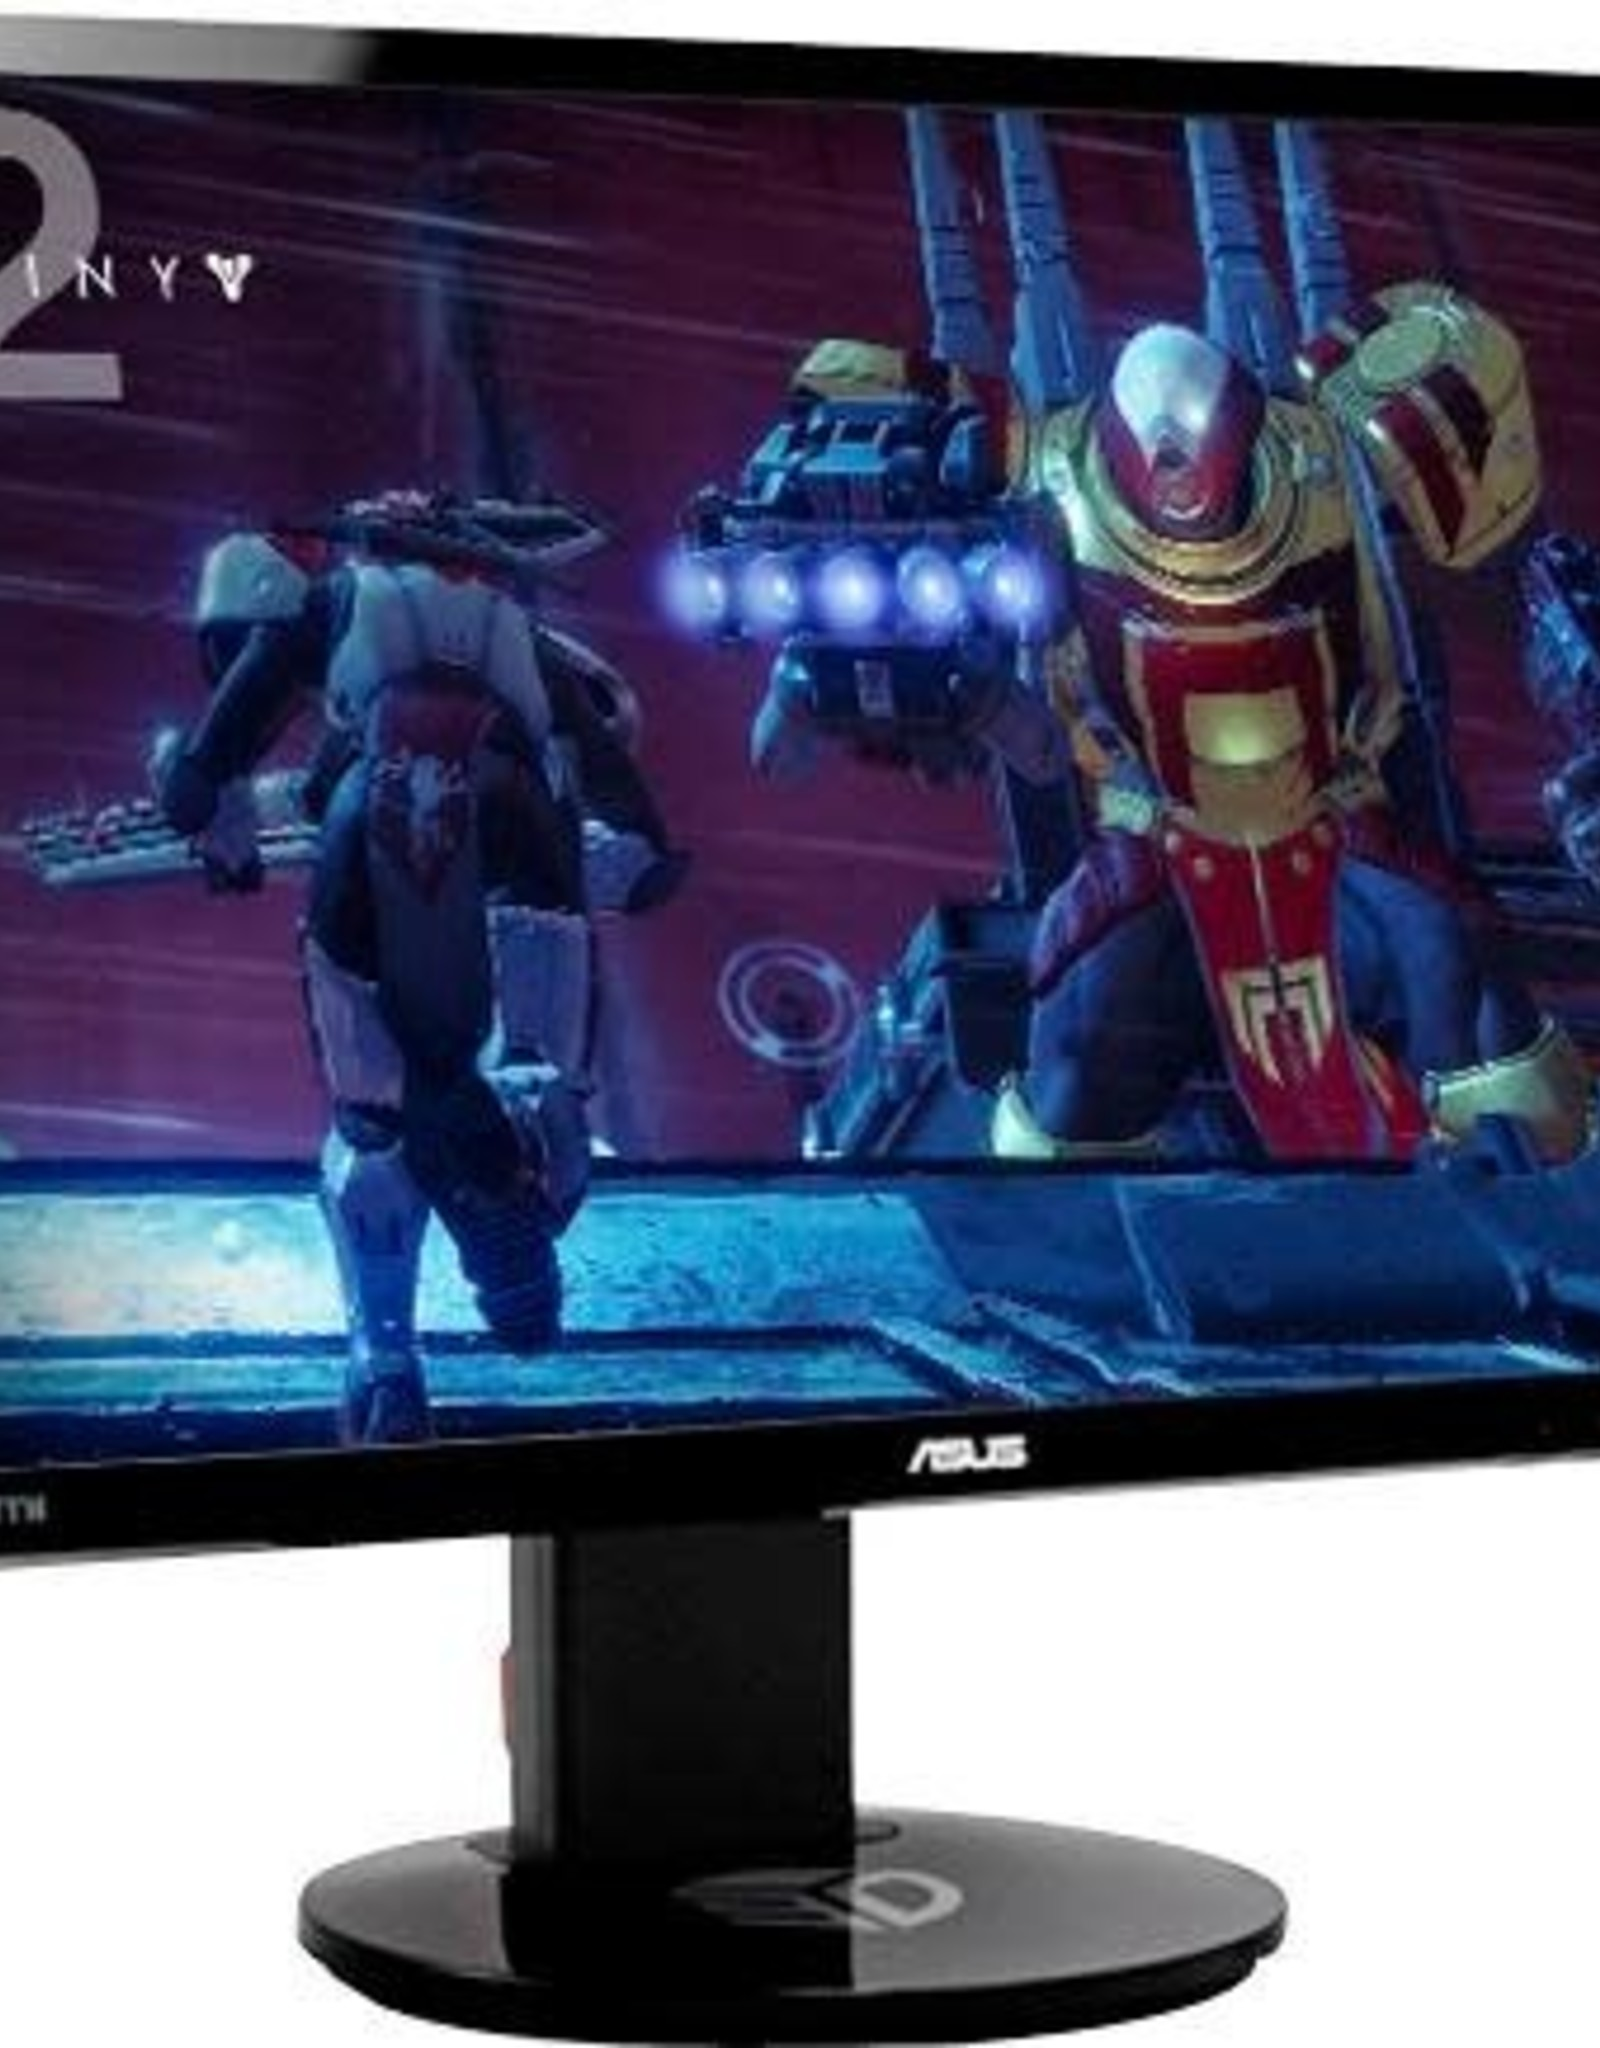 Asus ASUS 24IN WLED 1MS 144HZ REFRESH VG248QE